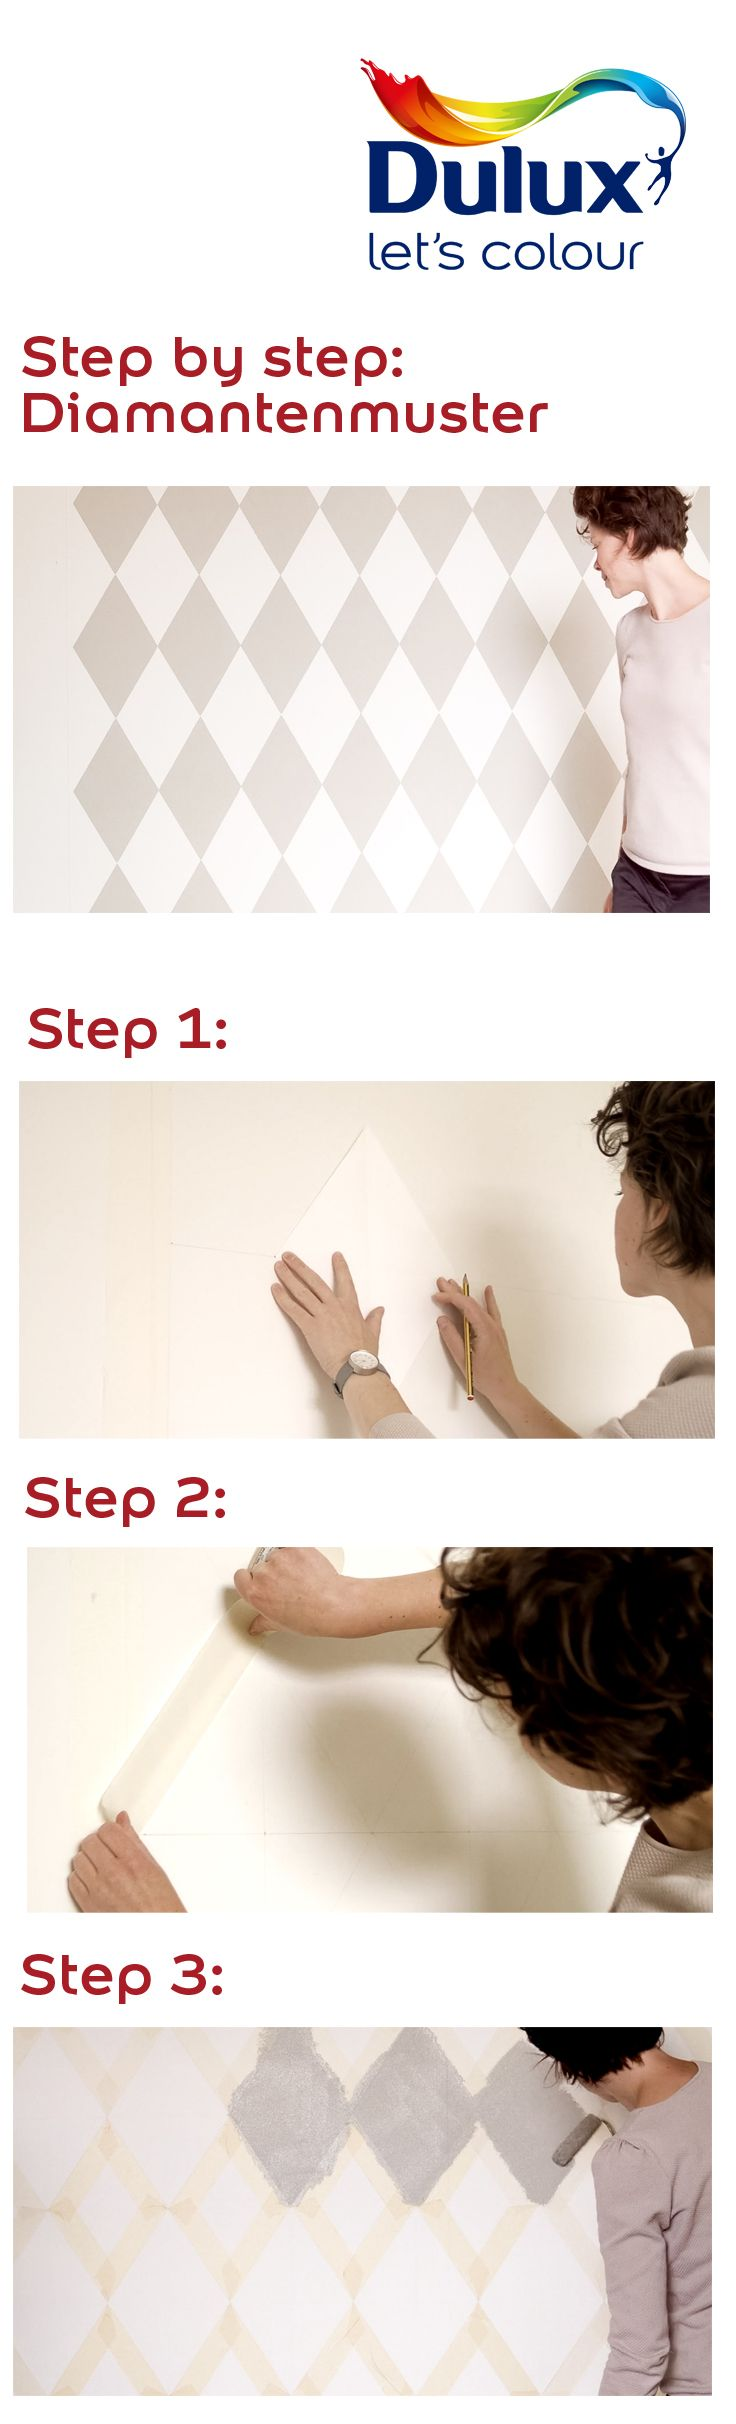 18 best How to: Farbeffekte images on Pinterest   Wand, Colors and ...